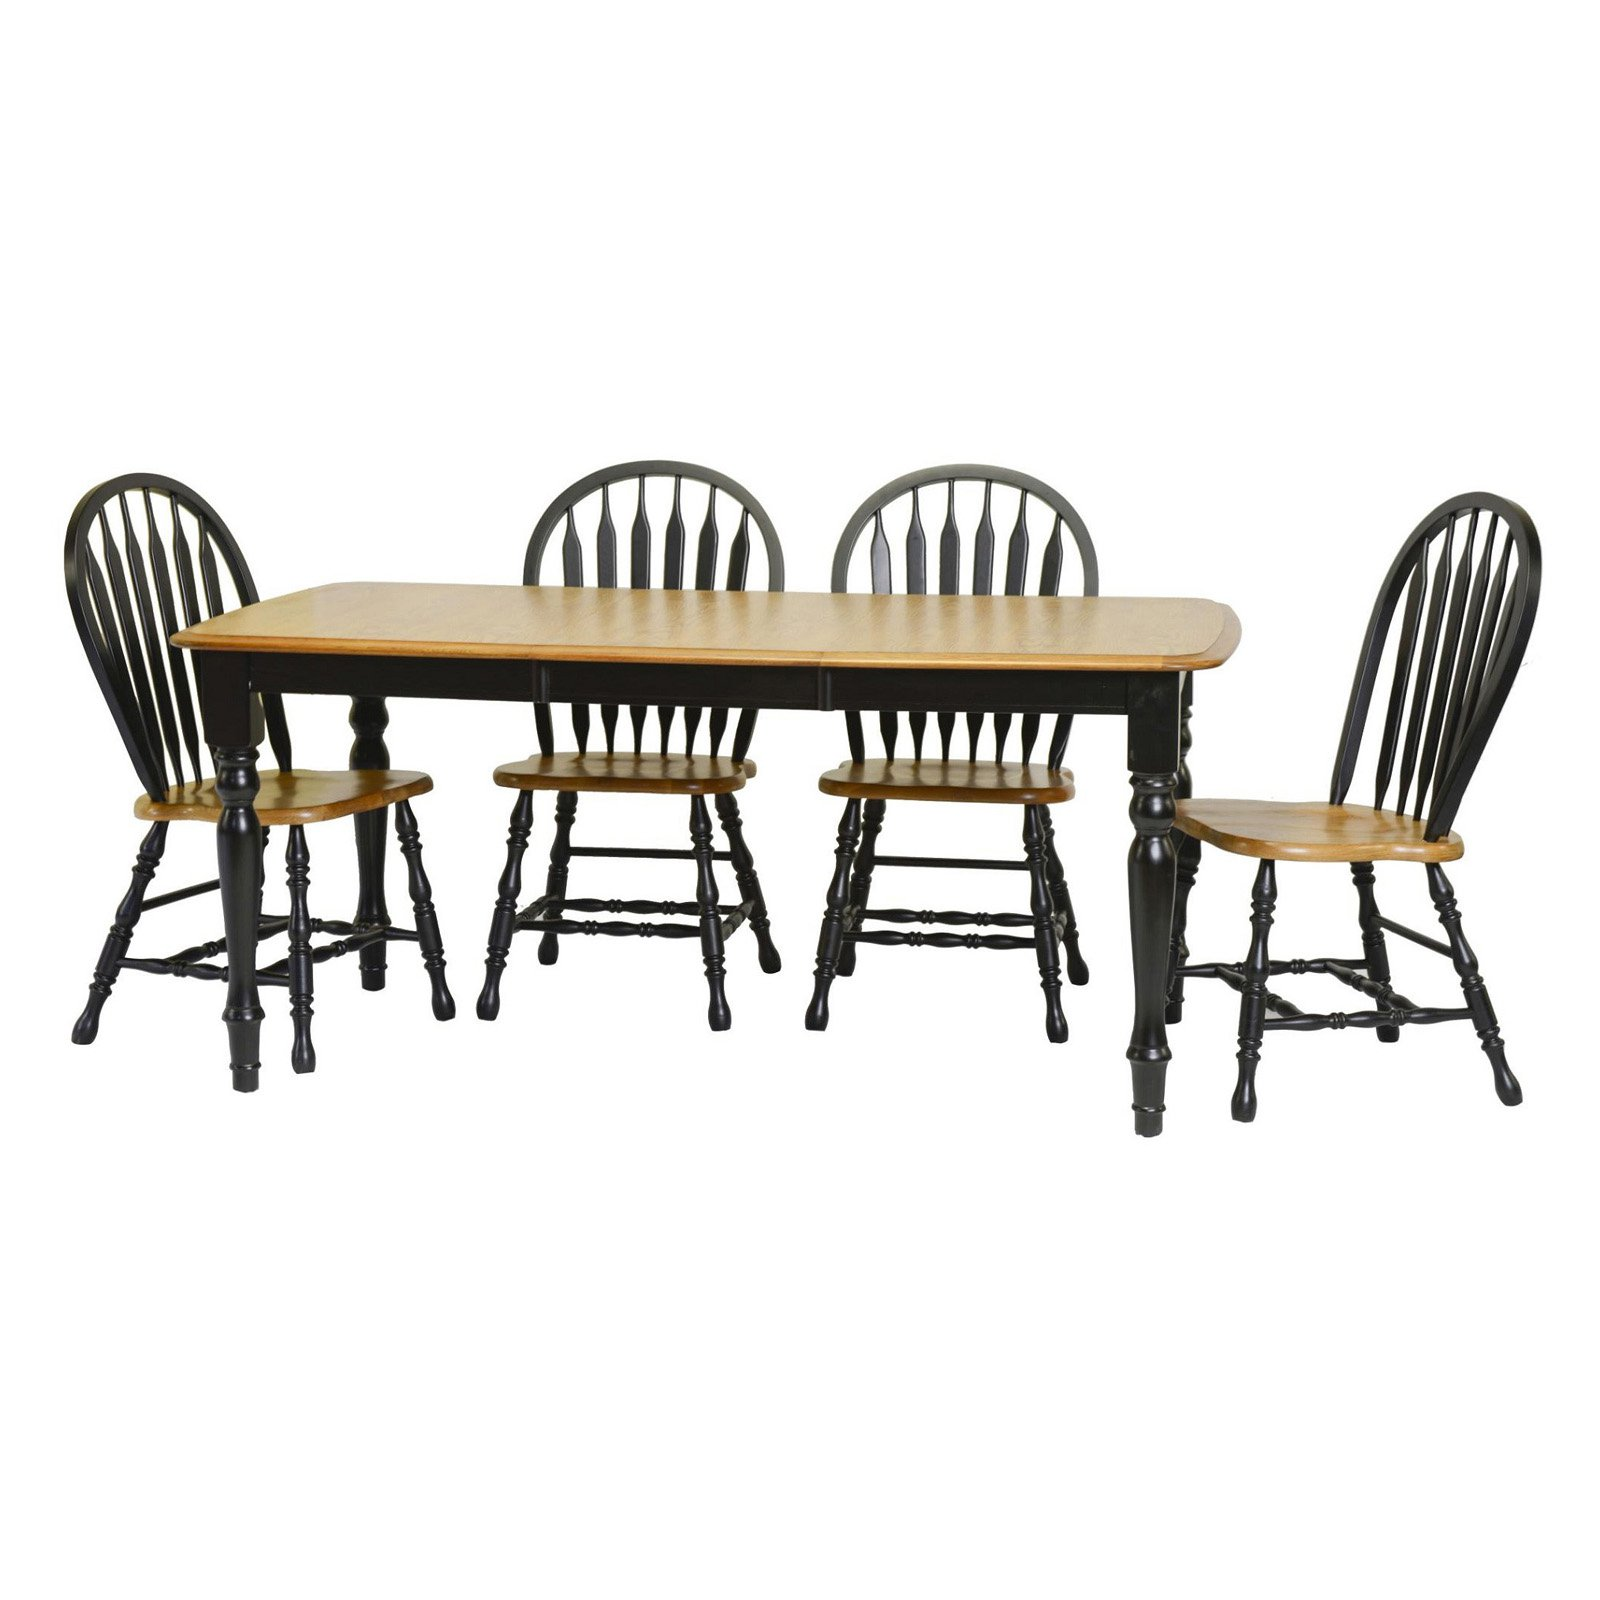 Tracey Dining Table in Harvest and Black Finish